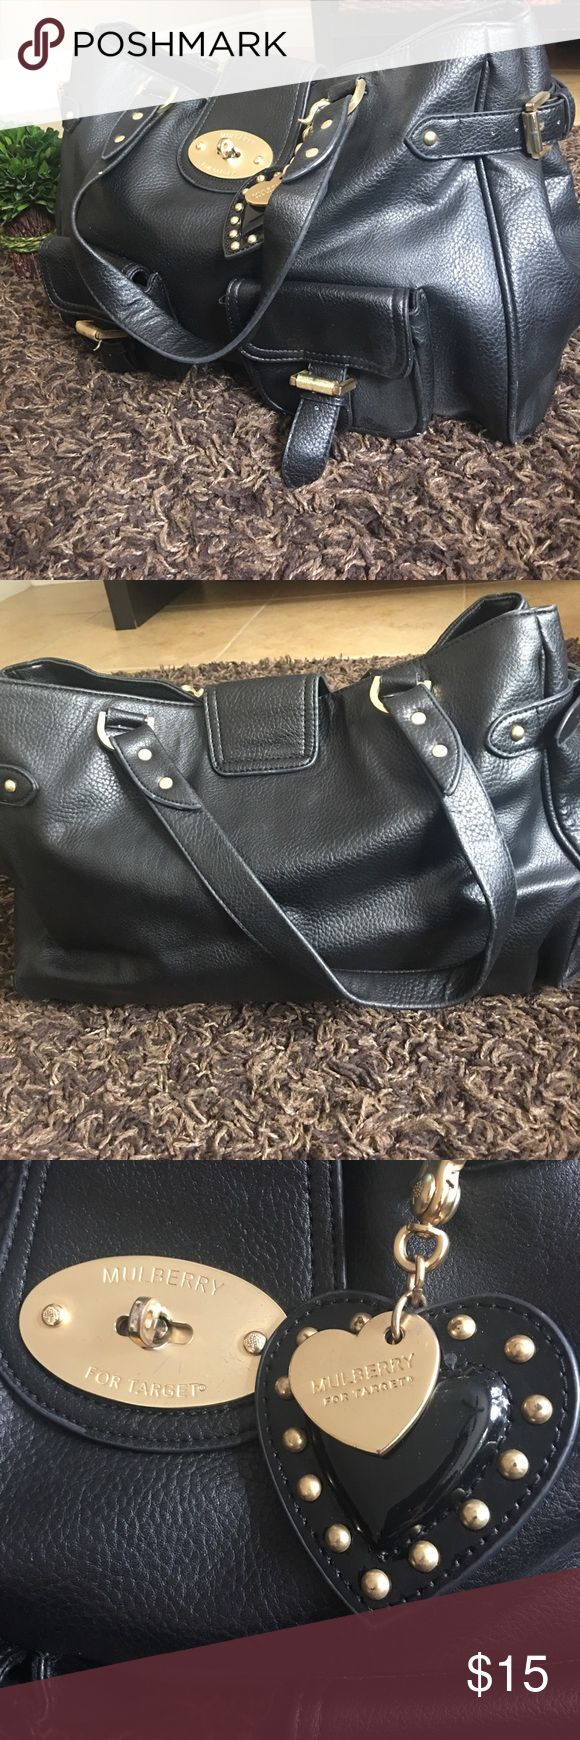 Mulberry for target purse Used . Good condition, Please see pics Mulberry for Target Bags Shoulder Bags